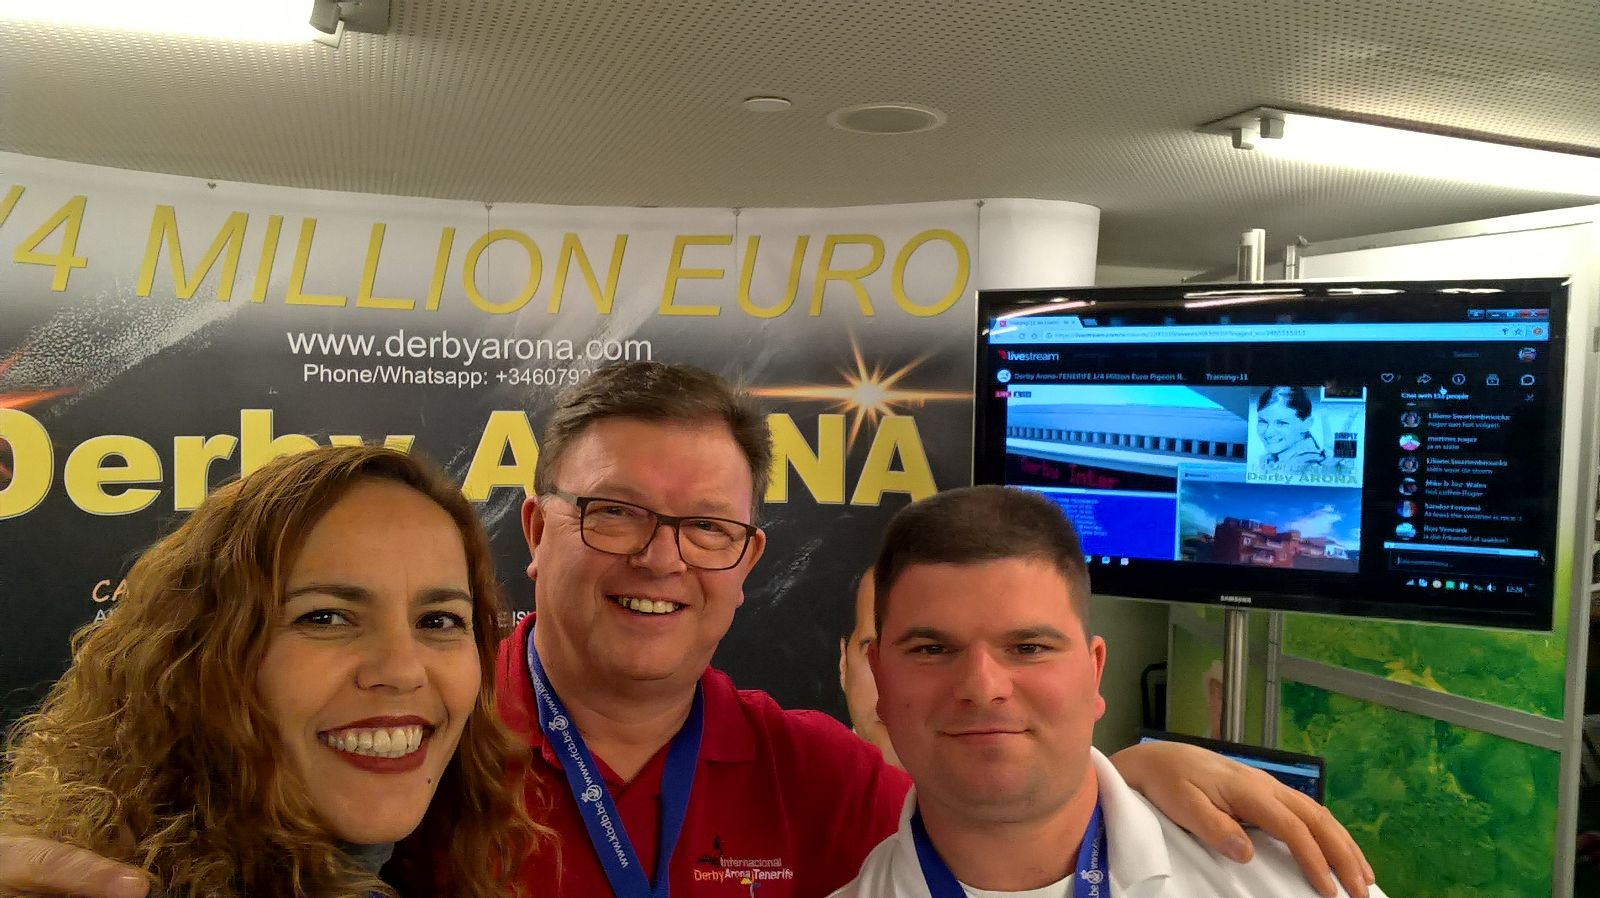 DERBY ARONA REPRESENTATIVES AT THE OLYMPIADE IN BRUSSELS